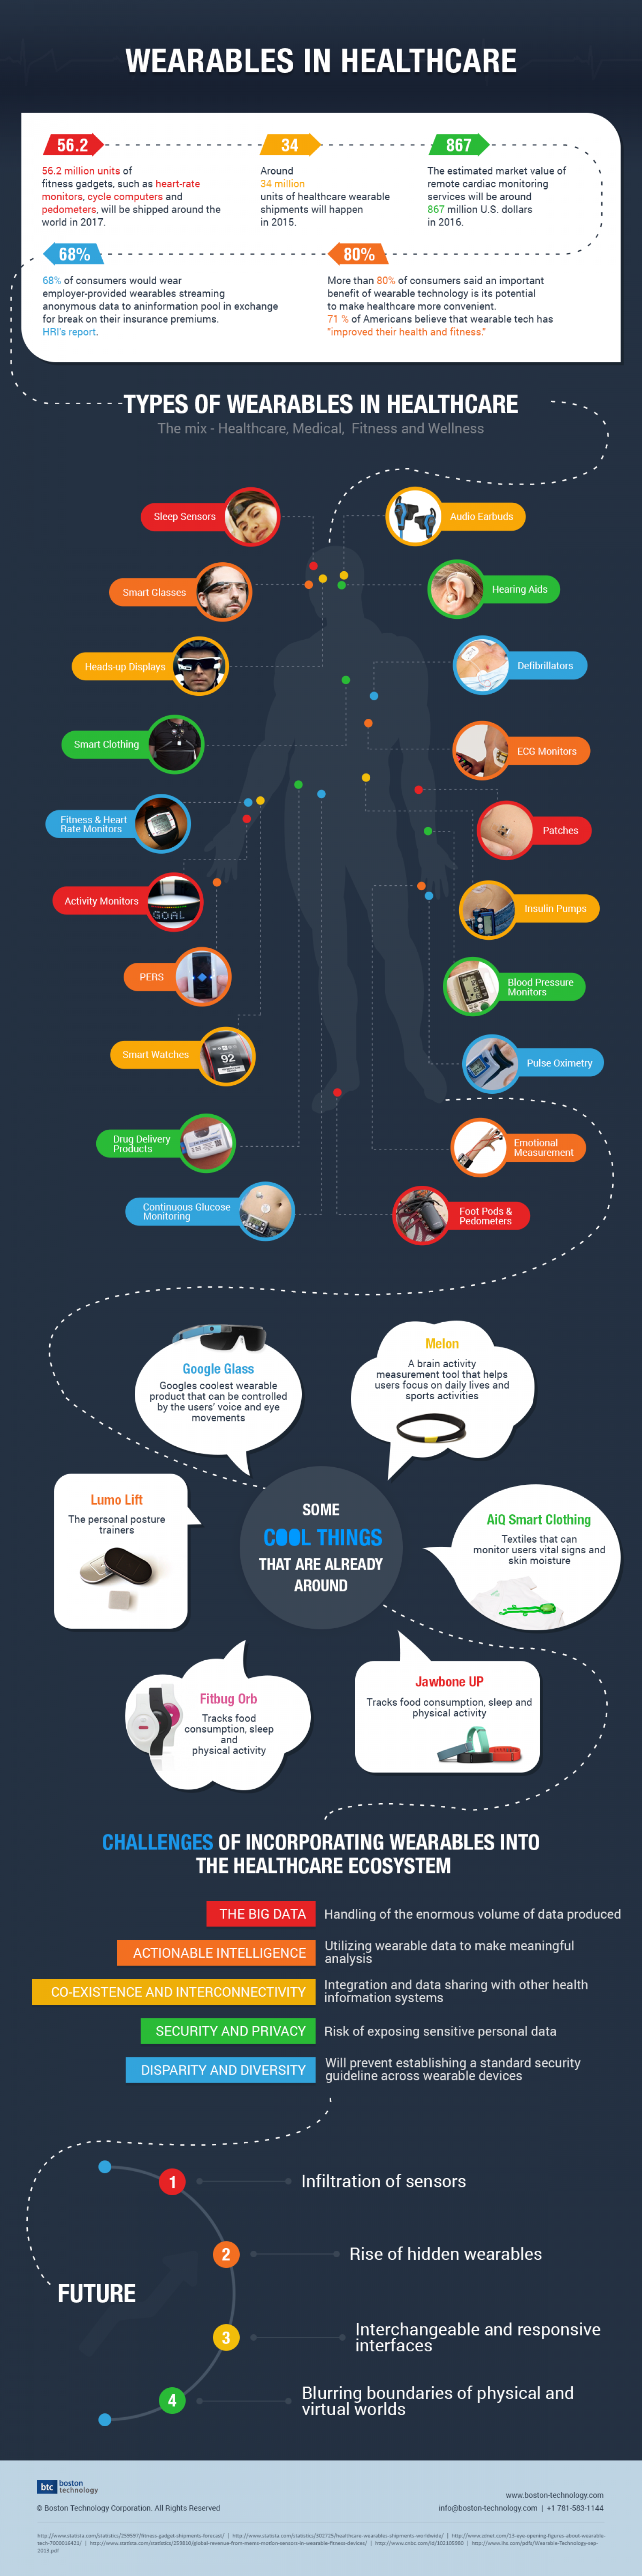 Wearables in Healthcare  Infographic